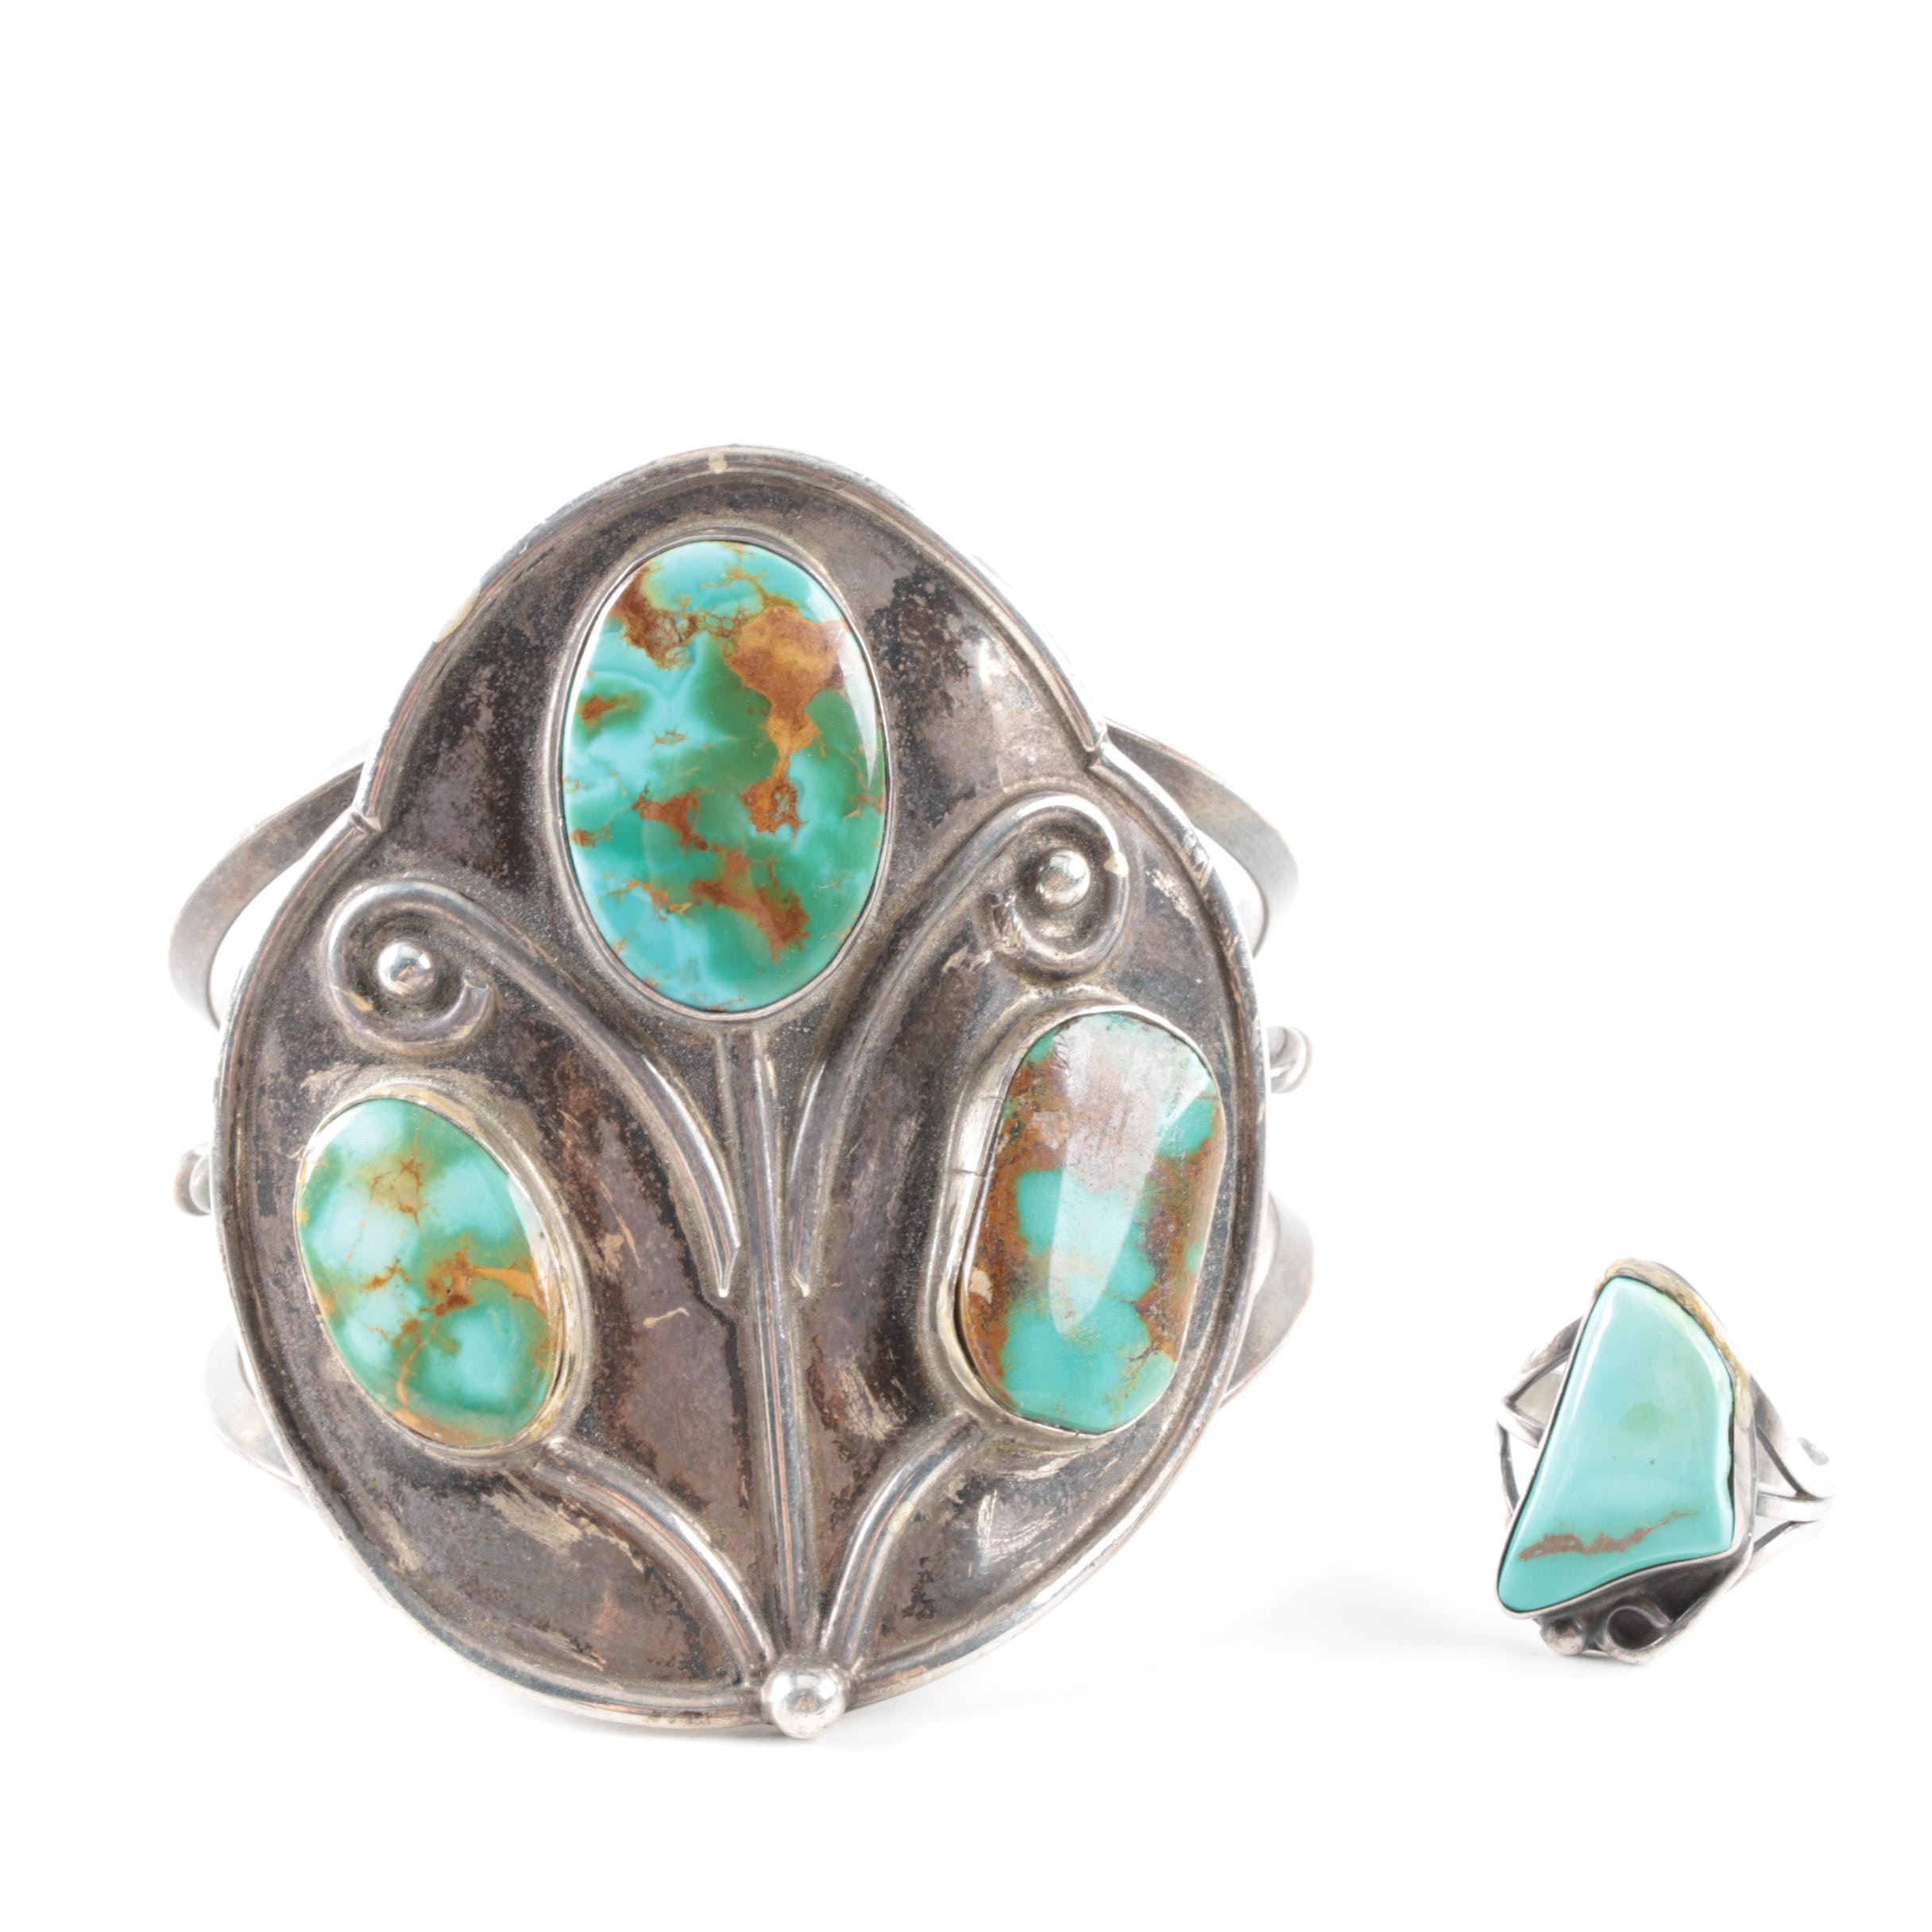 Sterling Silver Southwestern Style Turquoise Cuff Bracelet and Ring